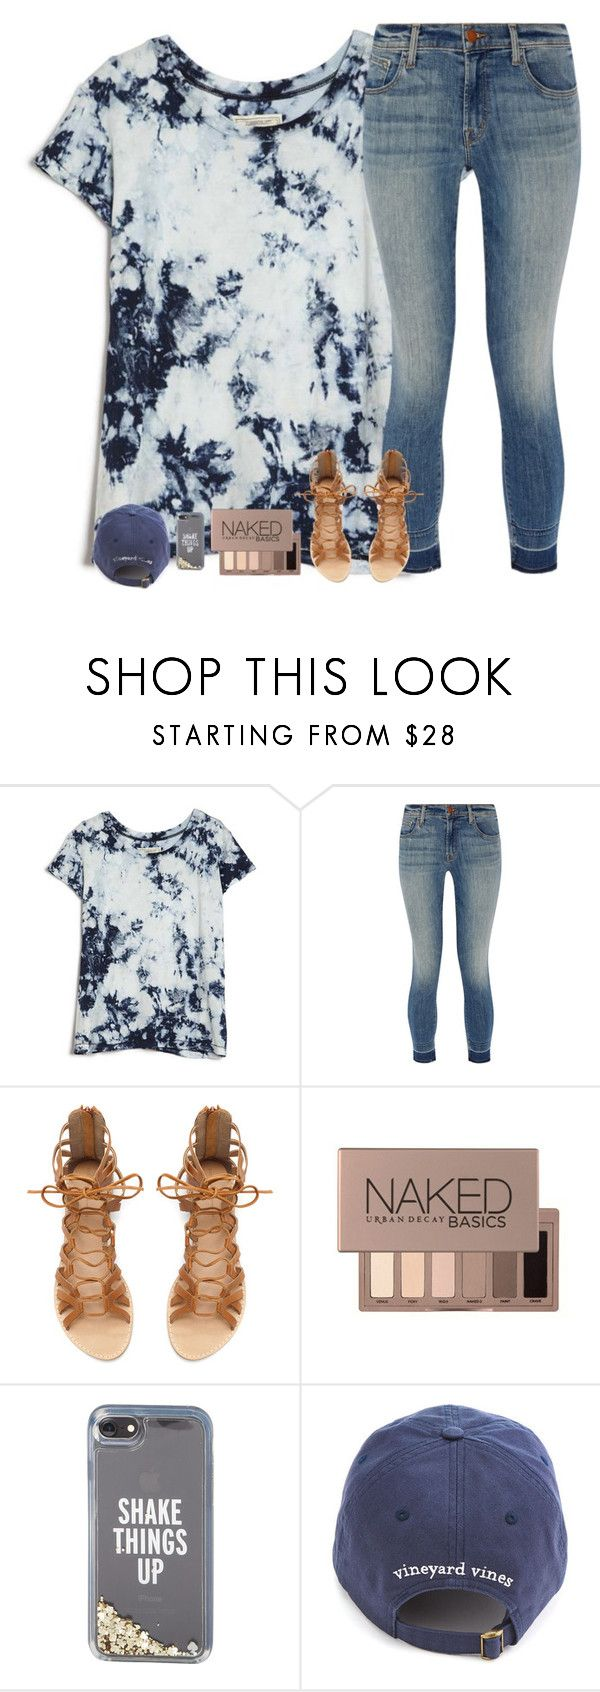 """Rtd!"" by sweet-n-southern ❤ liked on Polyvore featuring Current/Elliott, J Brand, Zara, Urban Decay and Kate Spade"